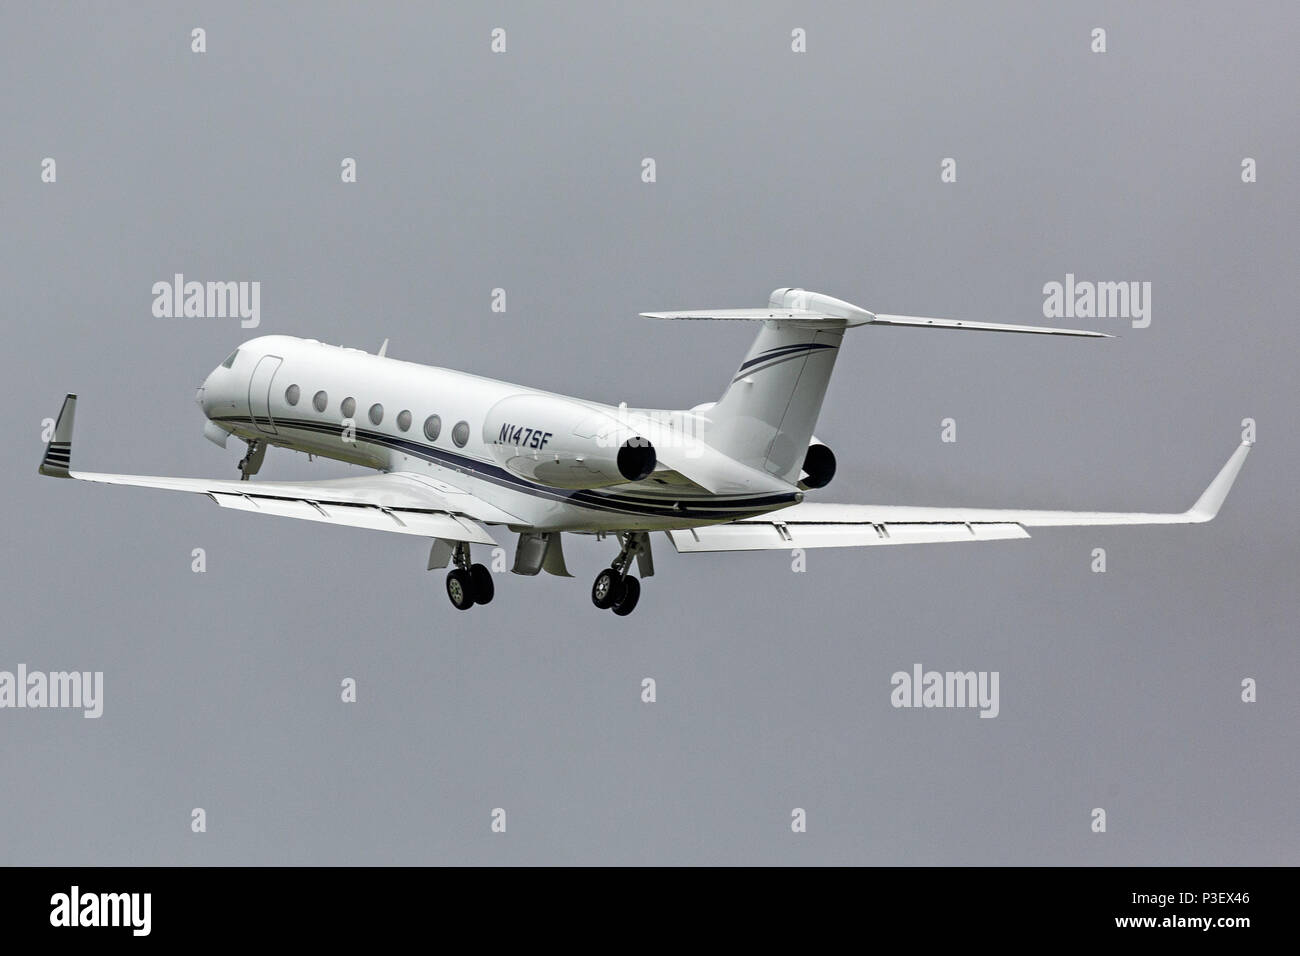 Un Gulfstream Aerospace GV-SP G550 business reactores corporativos, registrado como N147SF, despegando desde el Aeropuerto de London Luton en Inglaterra. Imagen De Stock